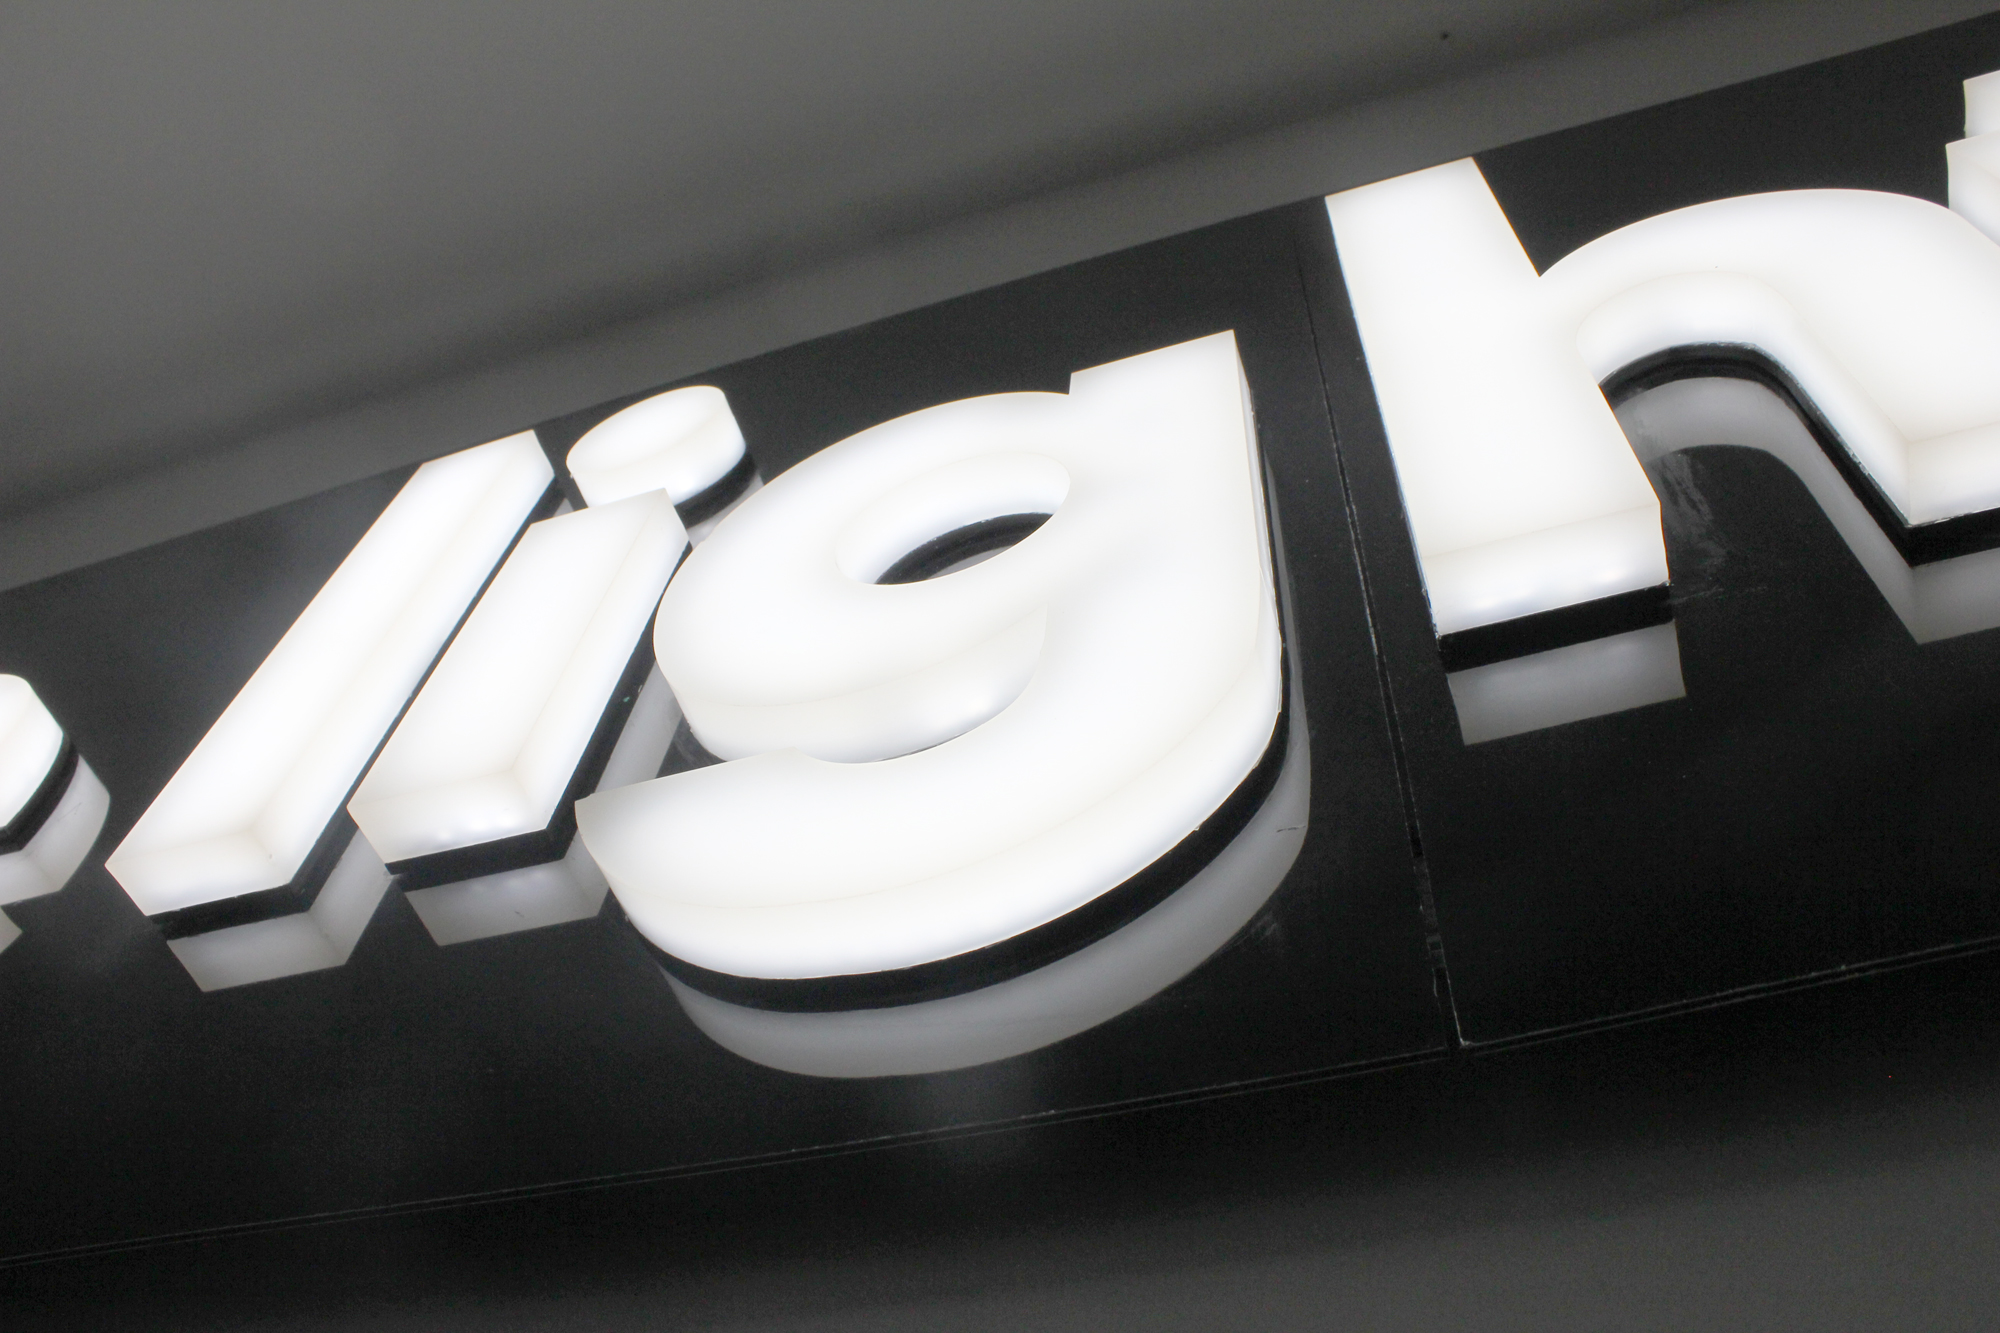 bespoke glowform lettering | specialist lighting design | The Light Lab